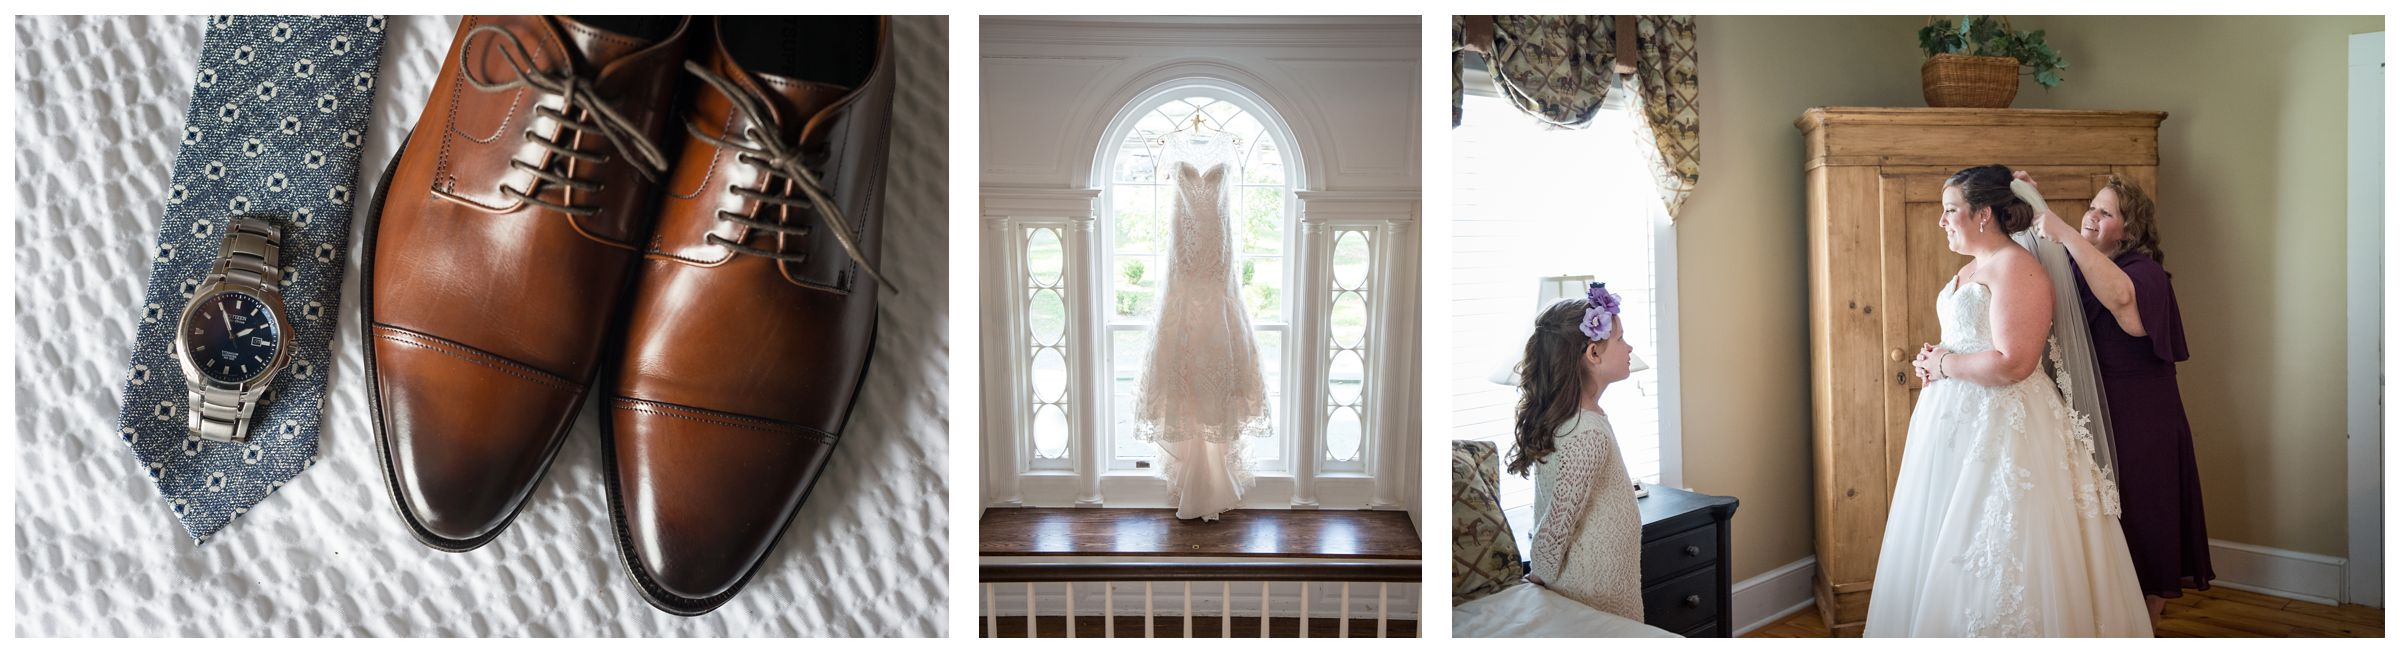 northern Virginia wedding photographer timeline planning tips